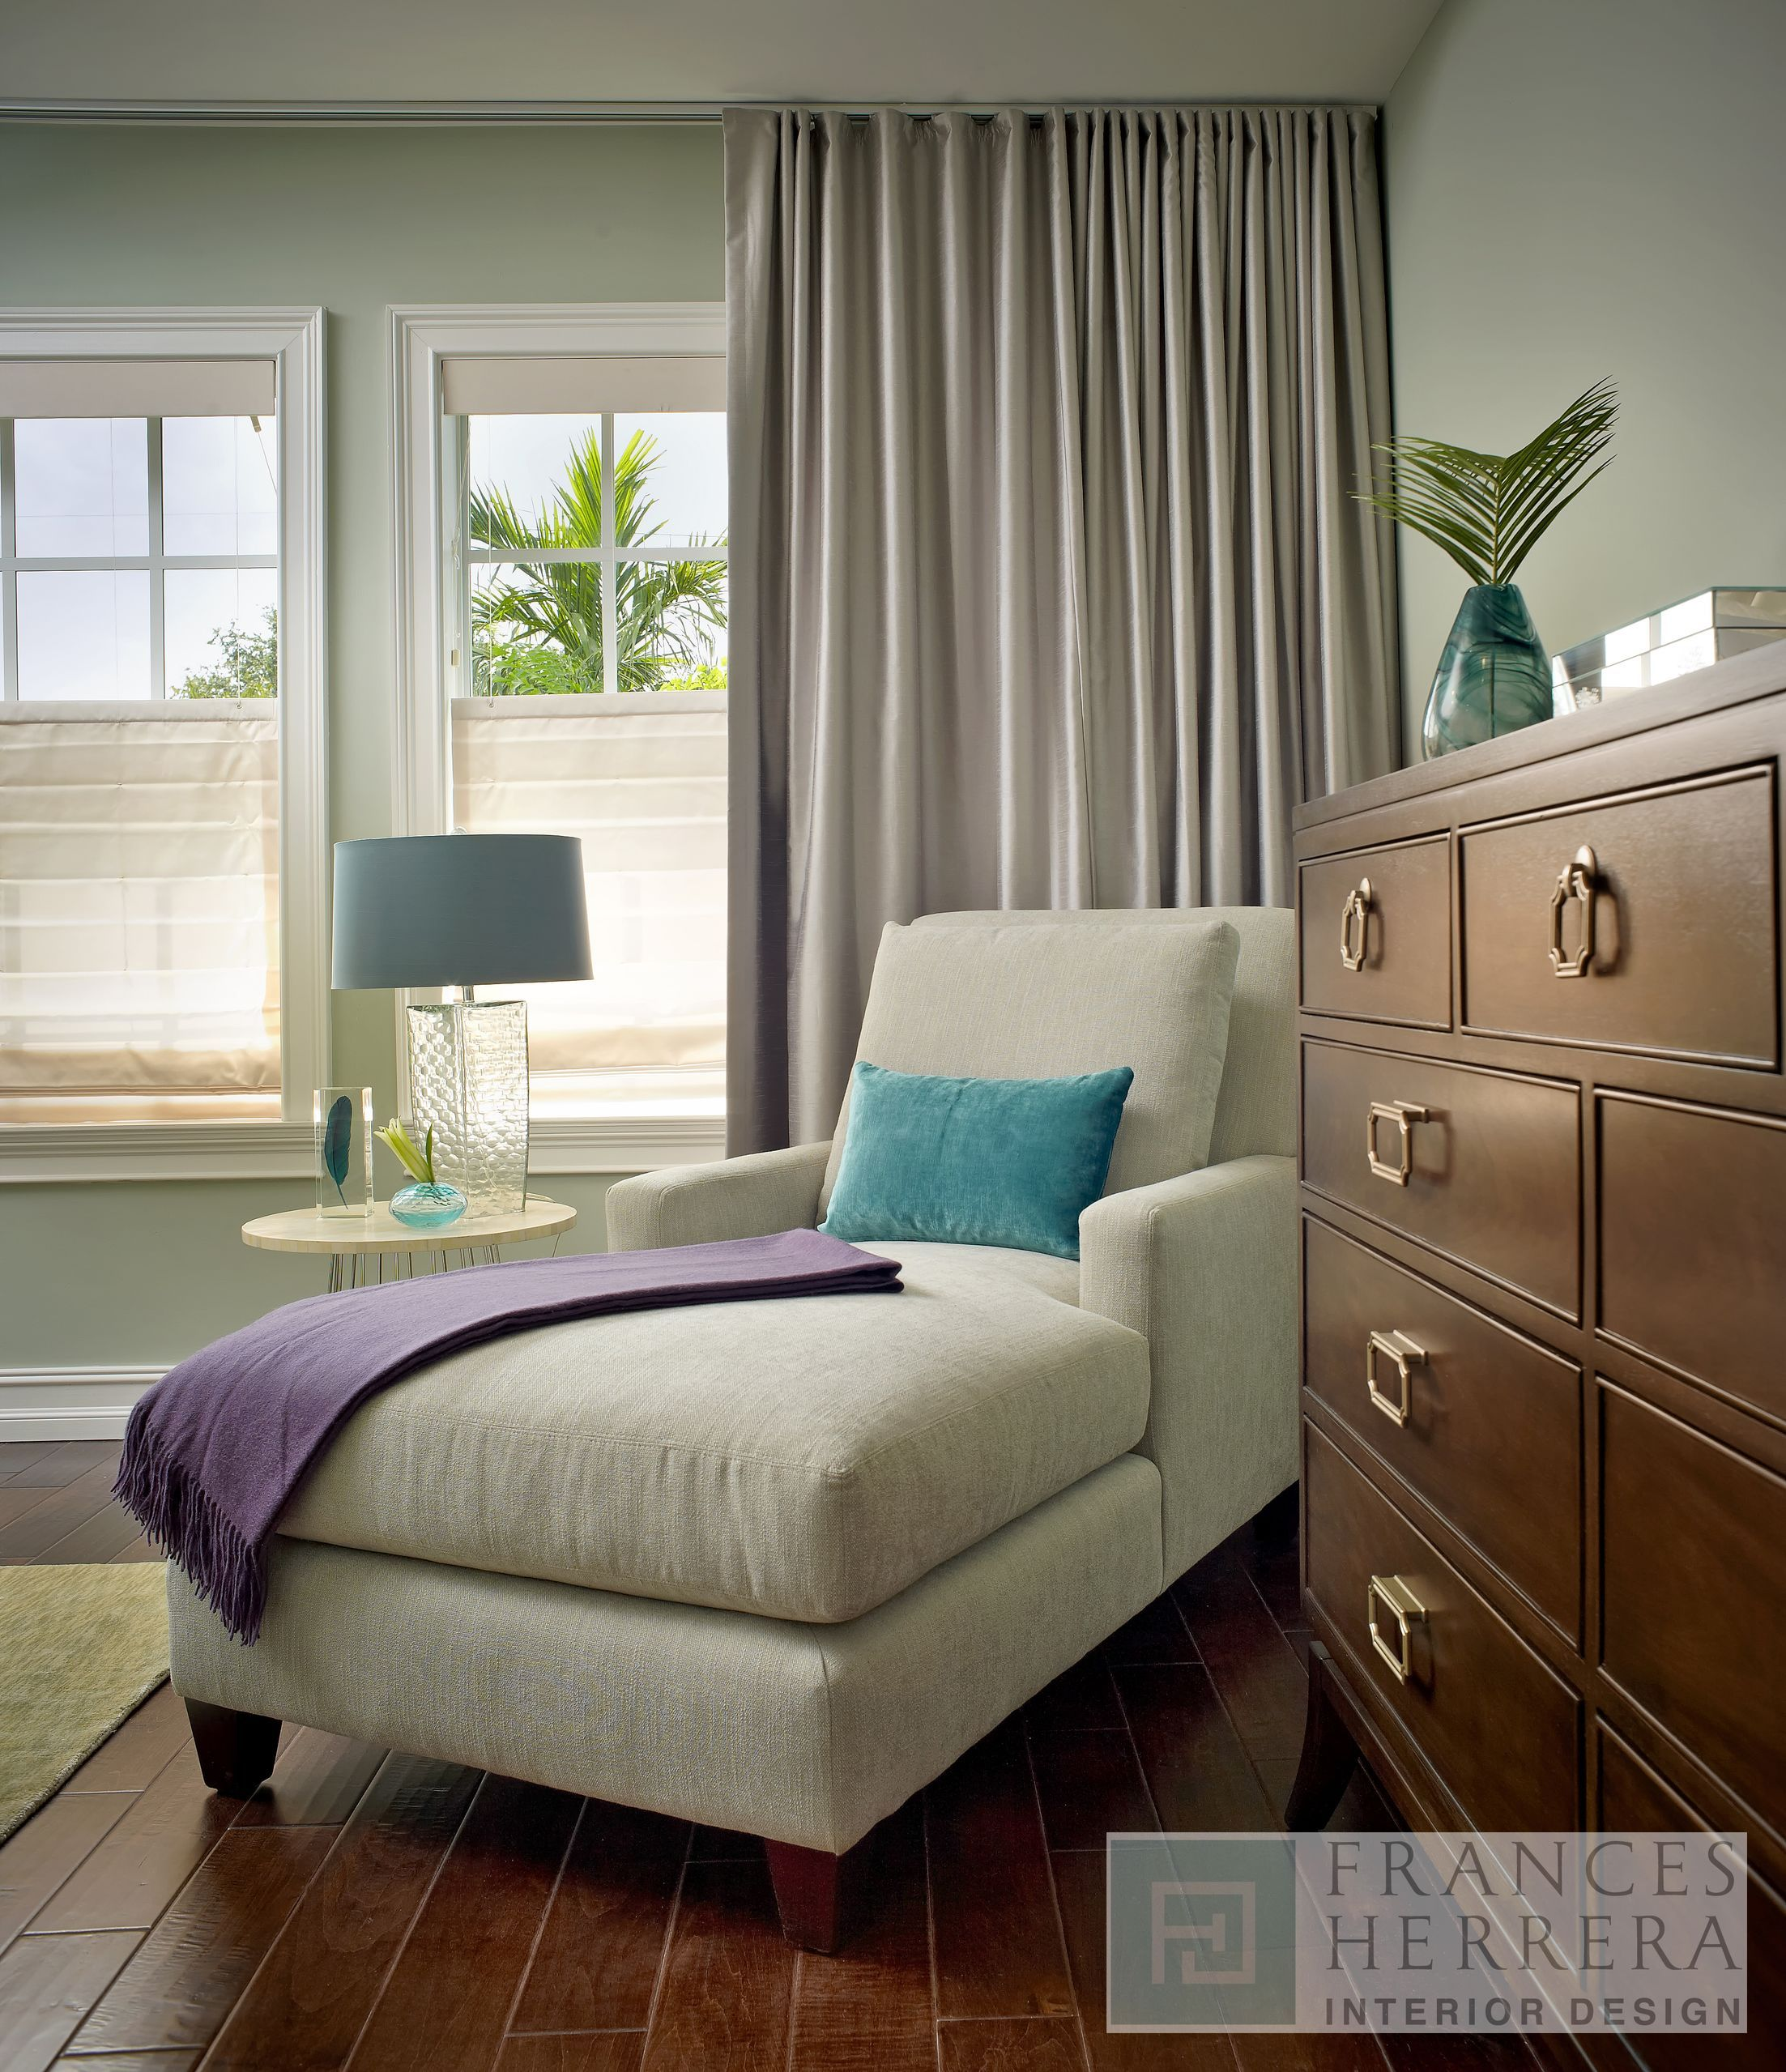 Pin by Wayfair.com on Shop The Look  Bedroom with sitting area